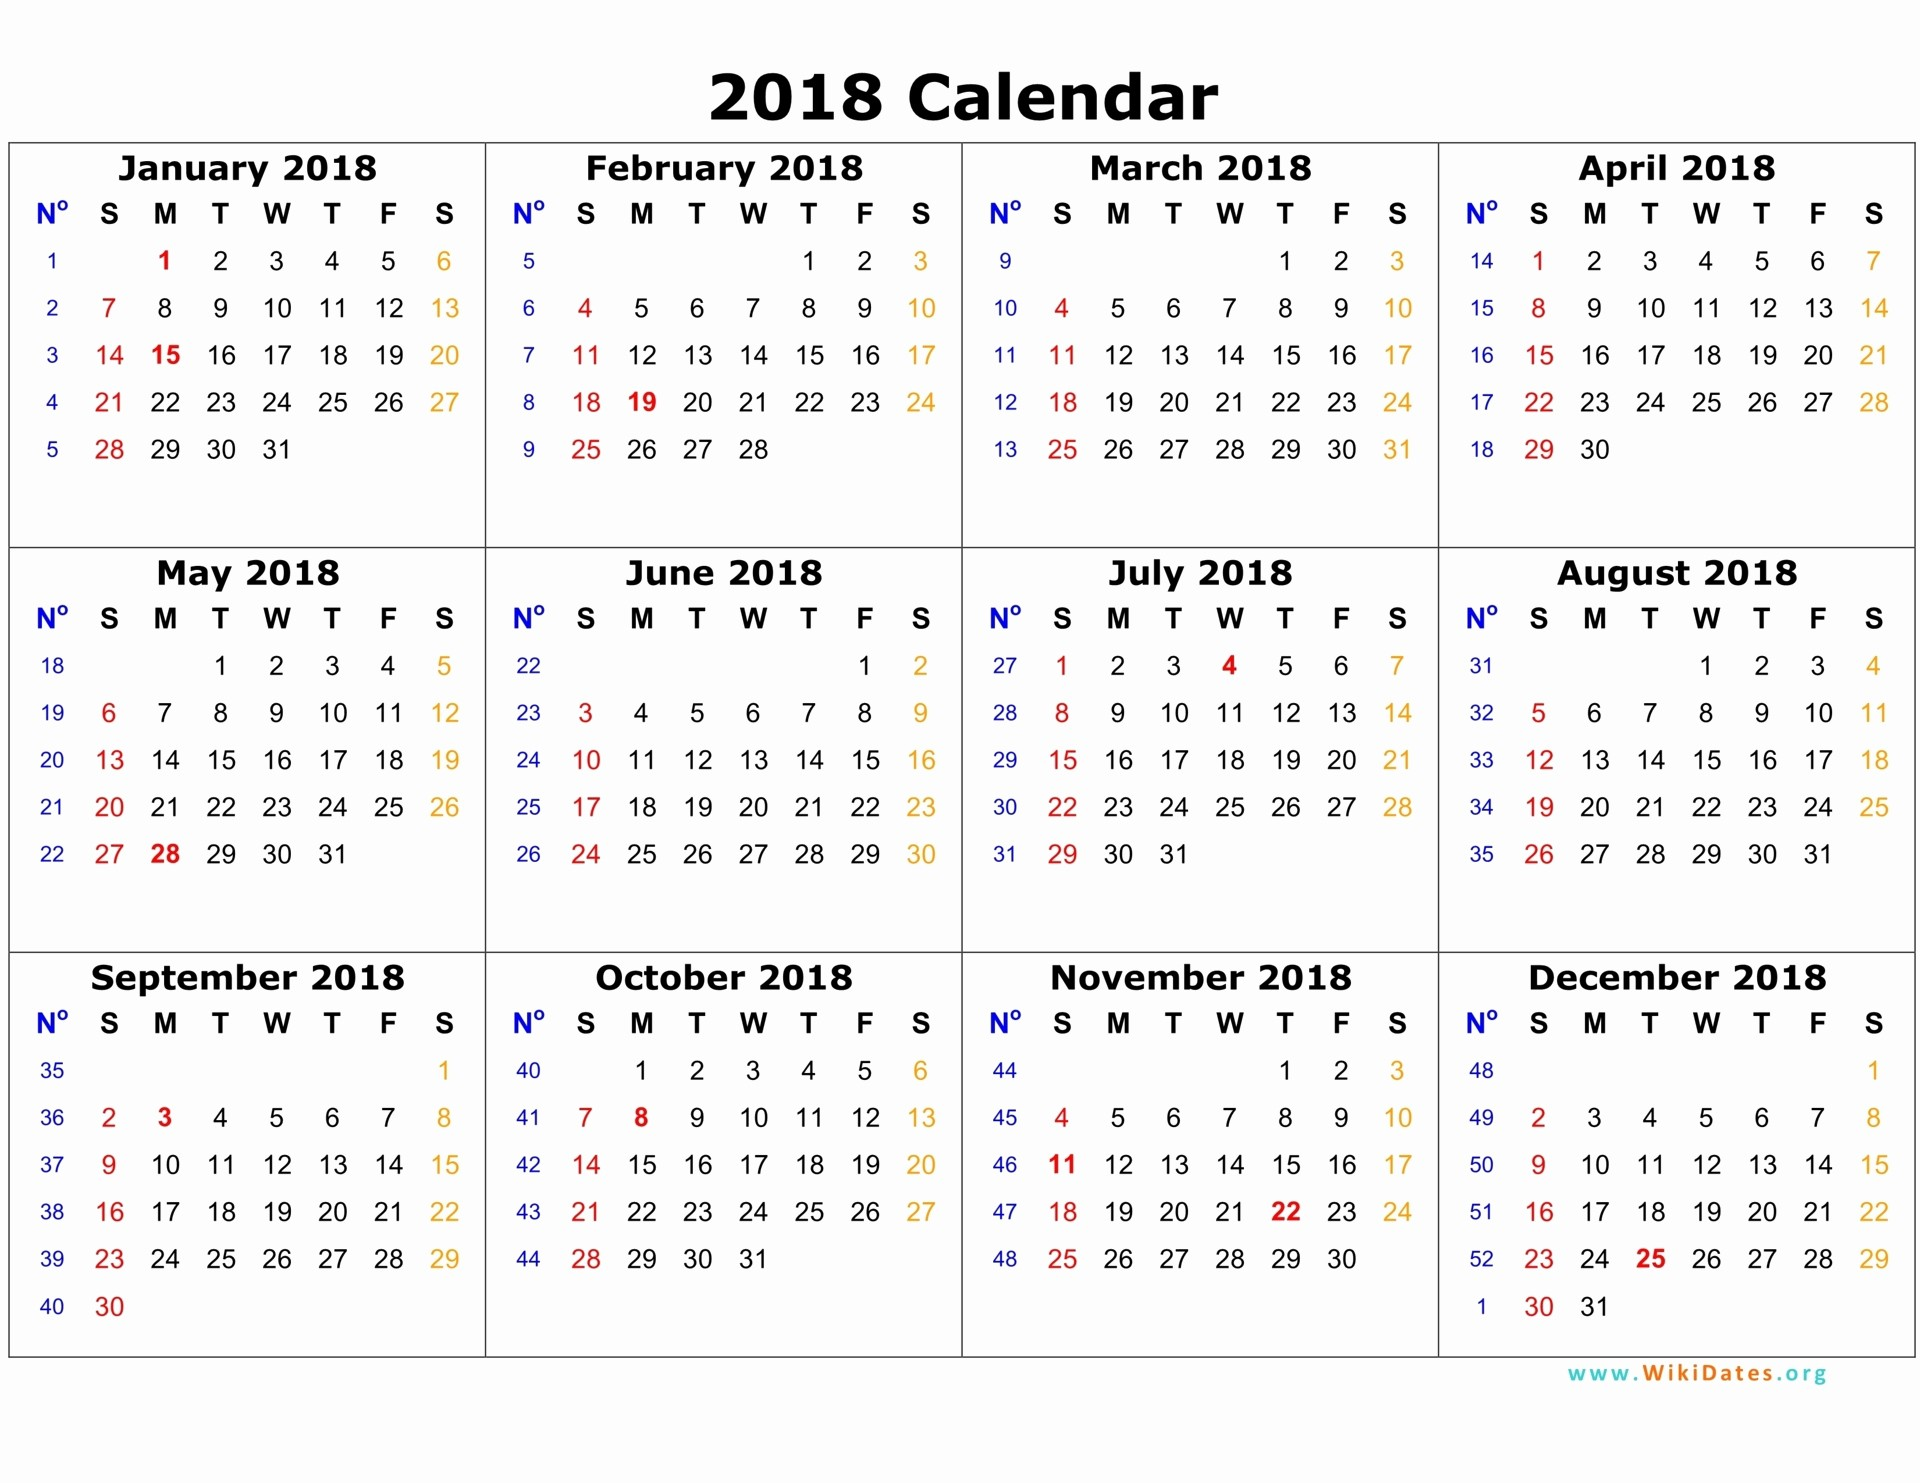 2018 Four Month Calendar Template Awesome 2018 Calendar Template